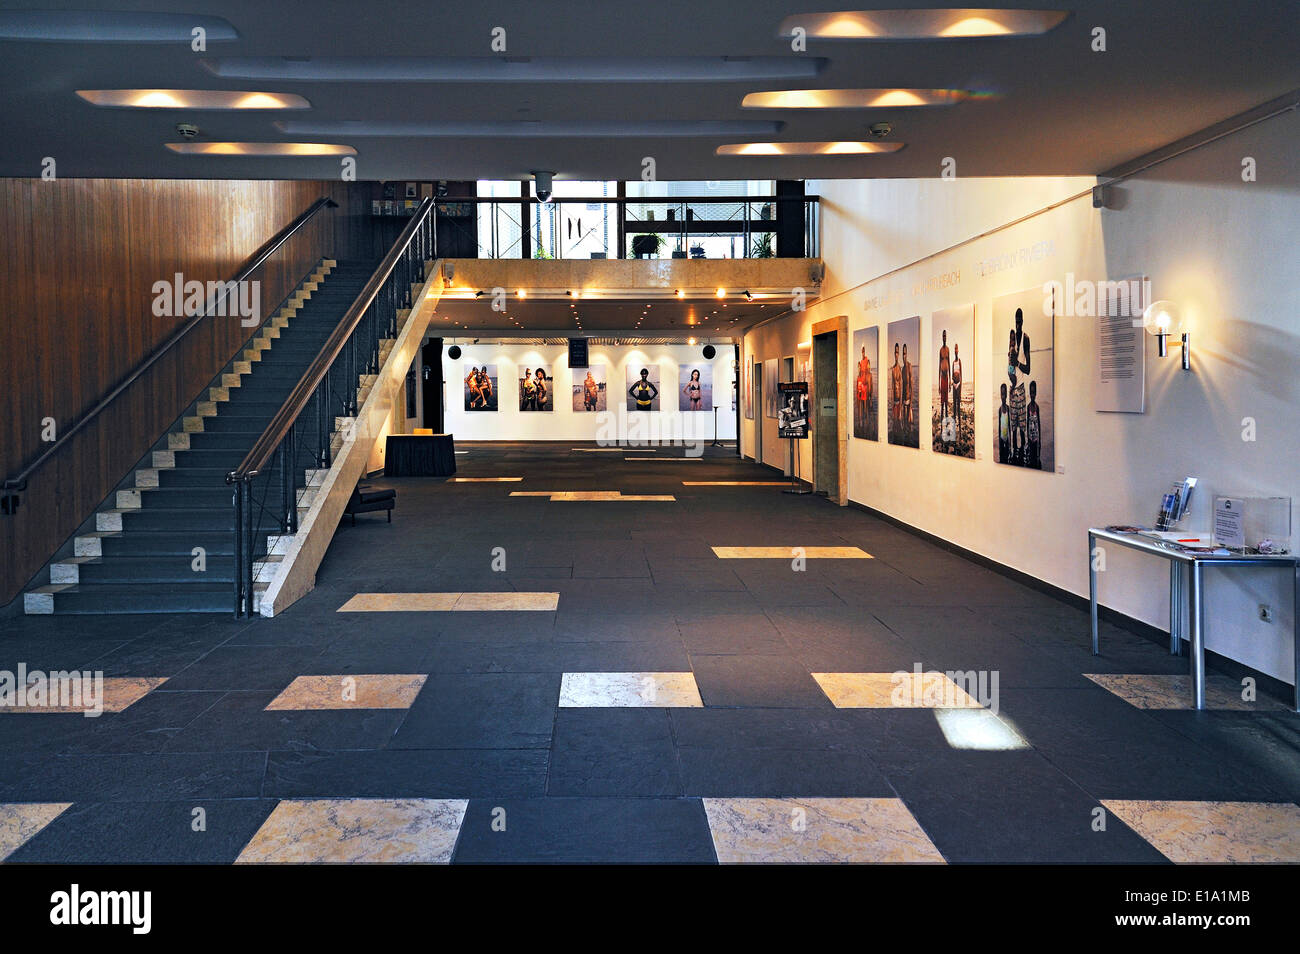 Exhibition of photographs by Wayne Lawrence, foyer of the America House in Munich, Bavaria, Germany - Stock Image